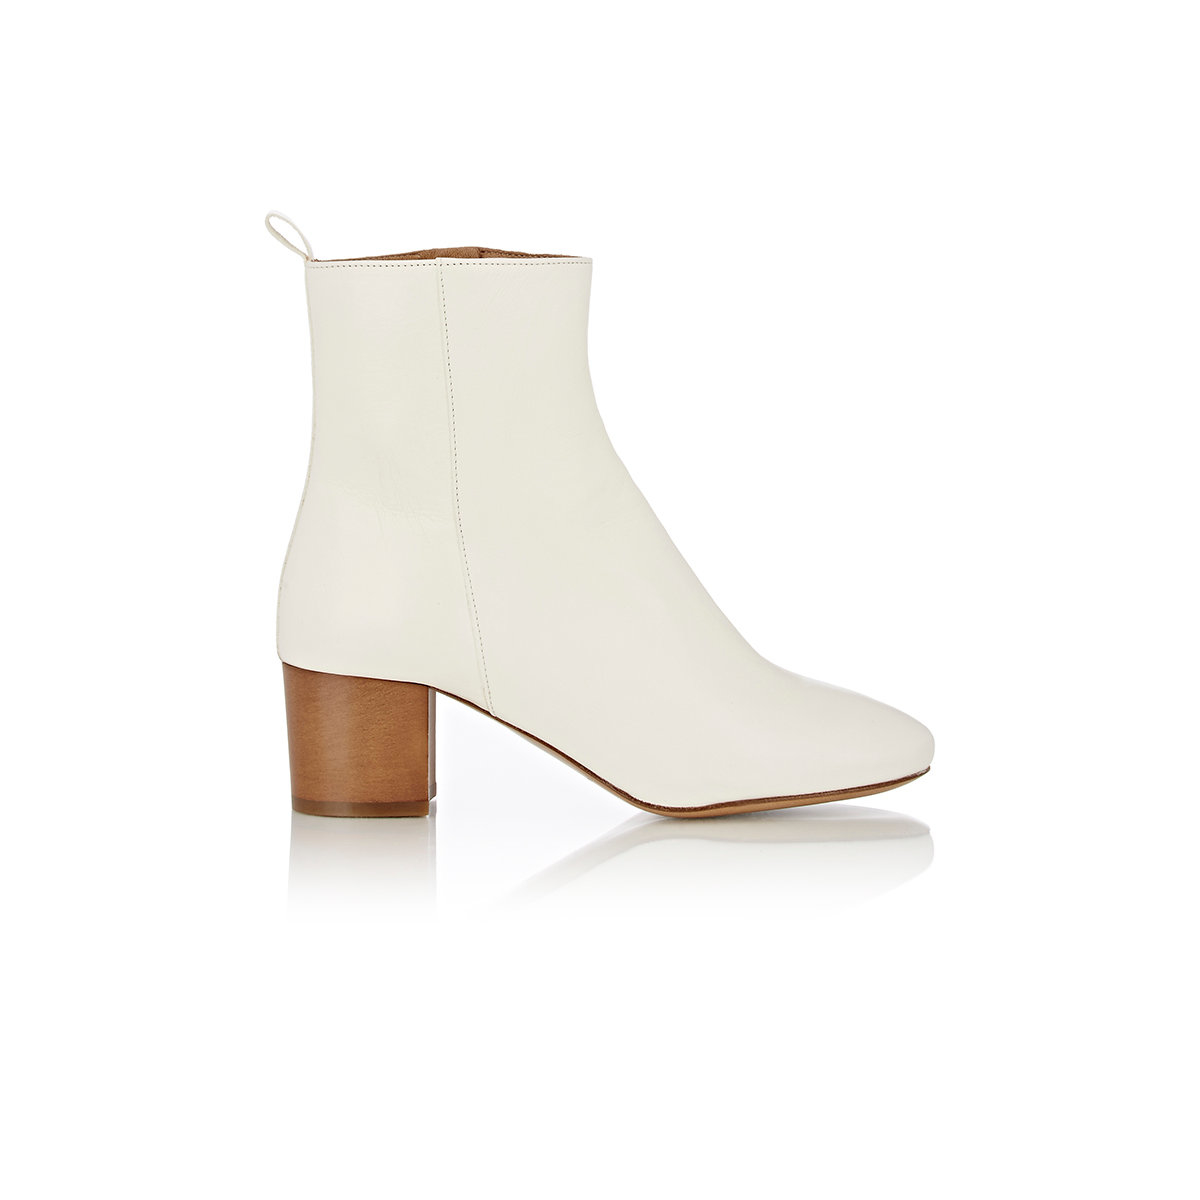 Mens leather gloves sale - 201 Toile Isabel Marant Women S Drew Ankle Boots In White Lyst